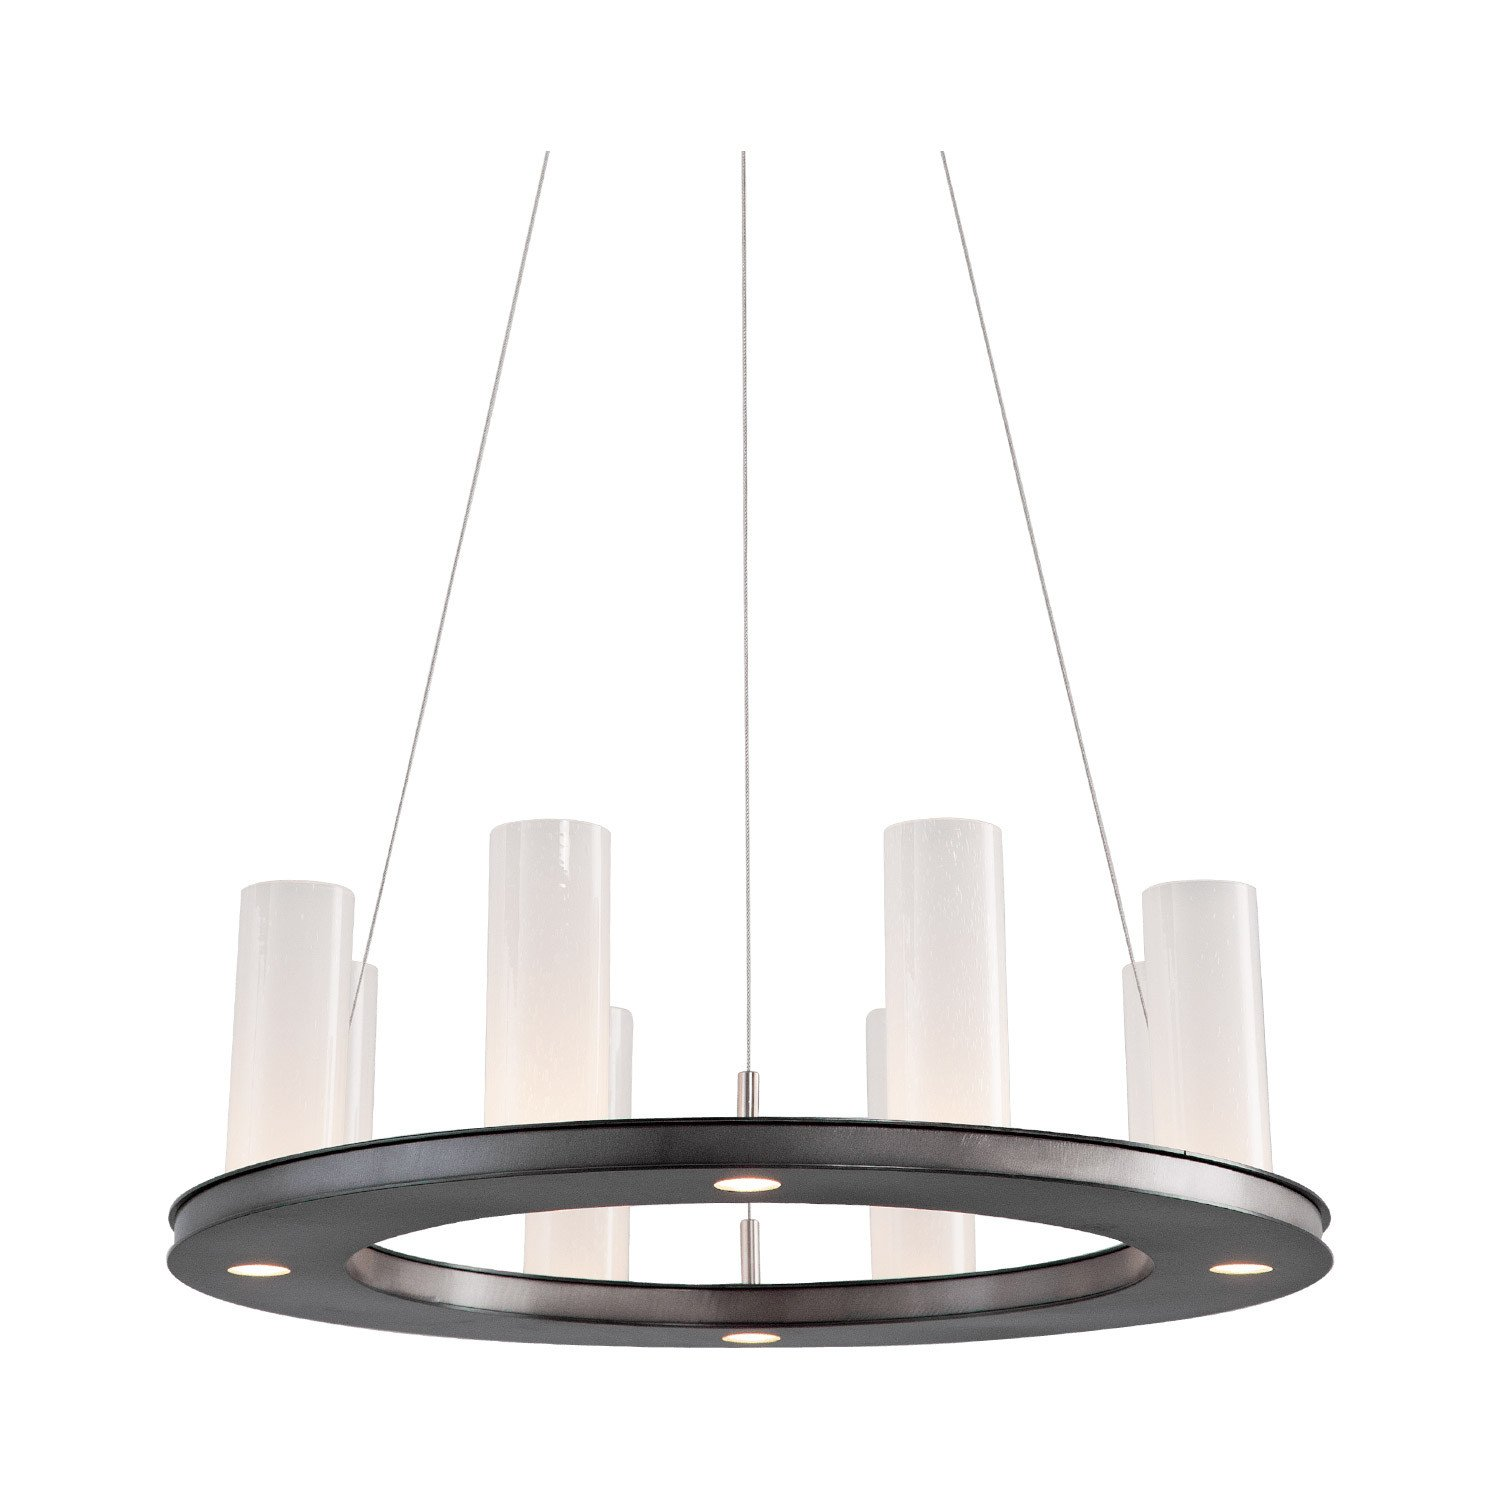 Chandelier Lighting for Bedroom Beautiful Corona Ring Chandelier by Hammerton Studio